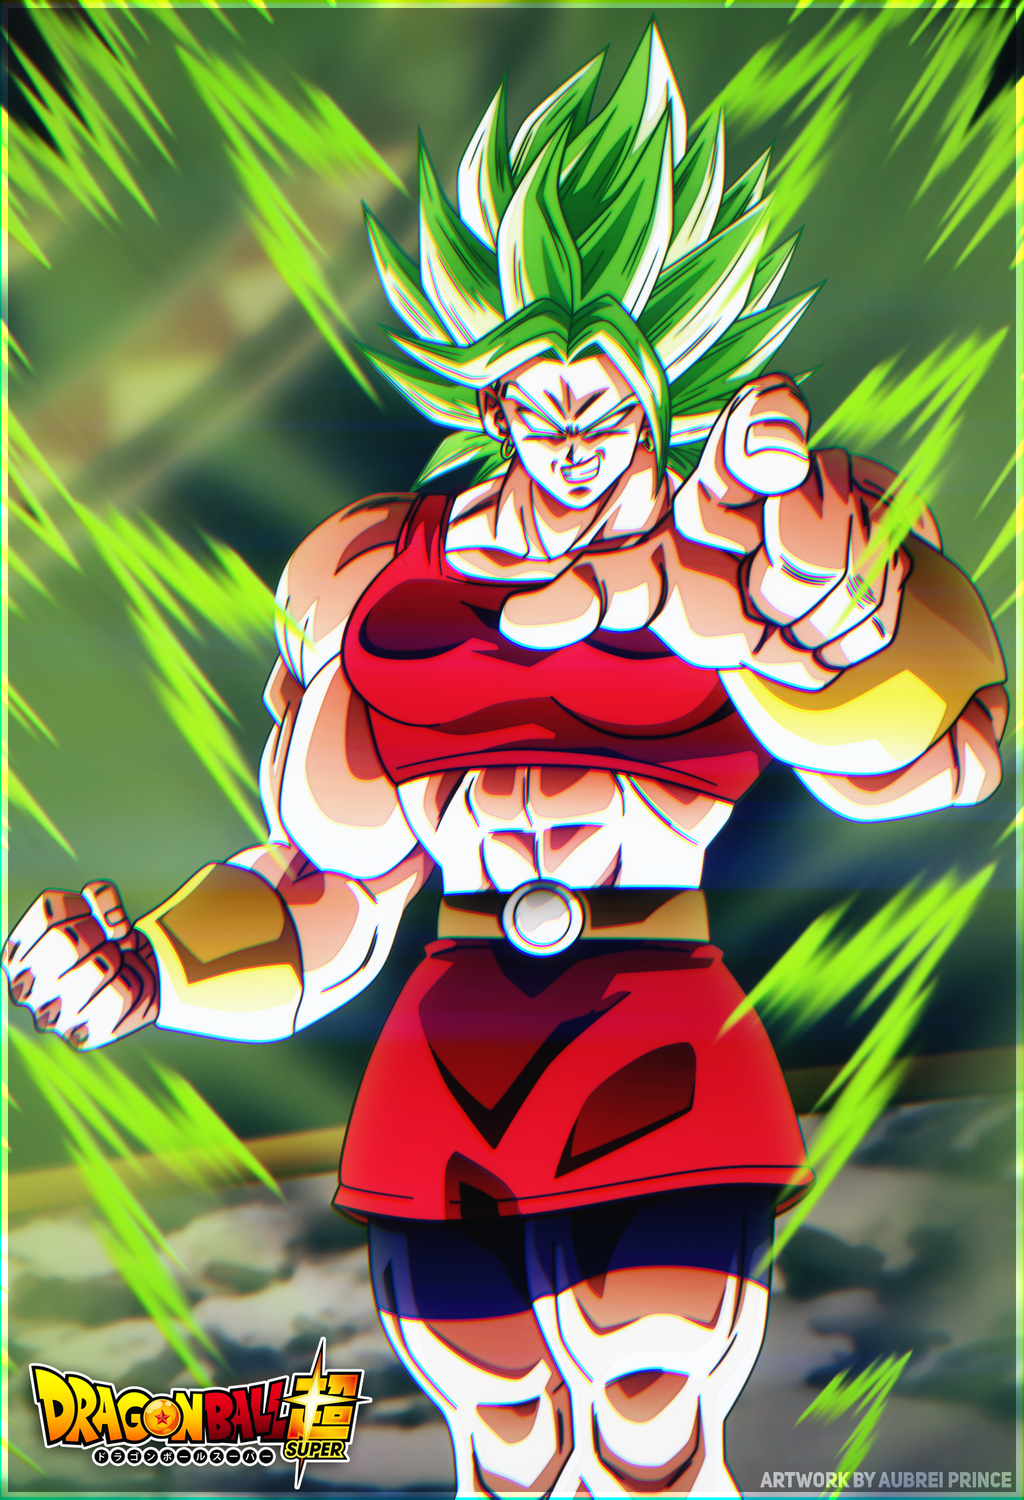 dragonball super poster by aubreiprince-